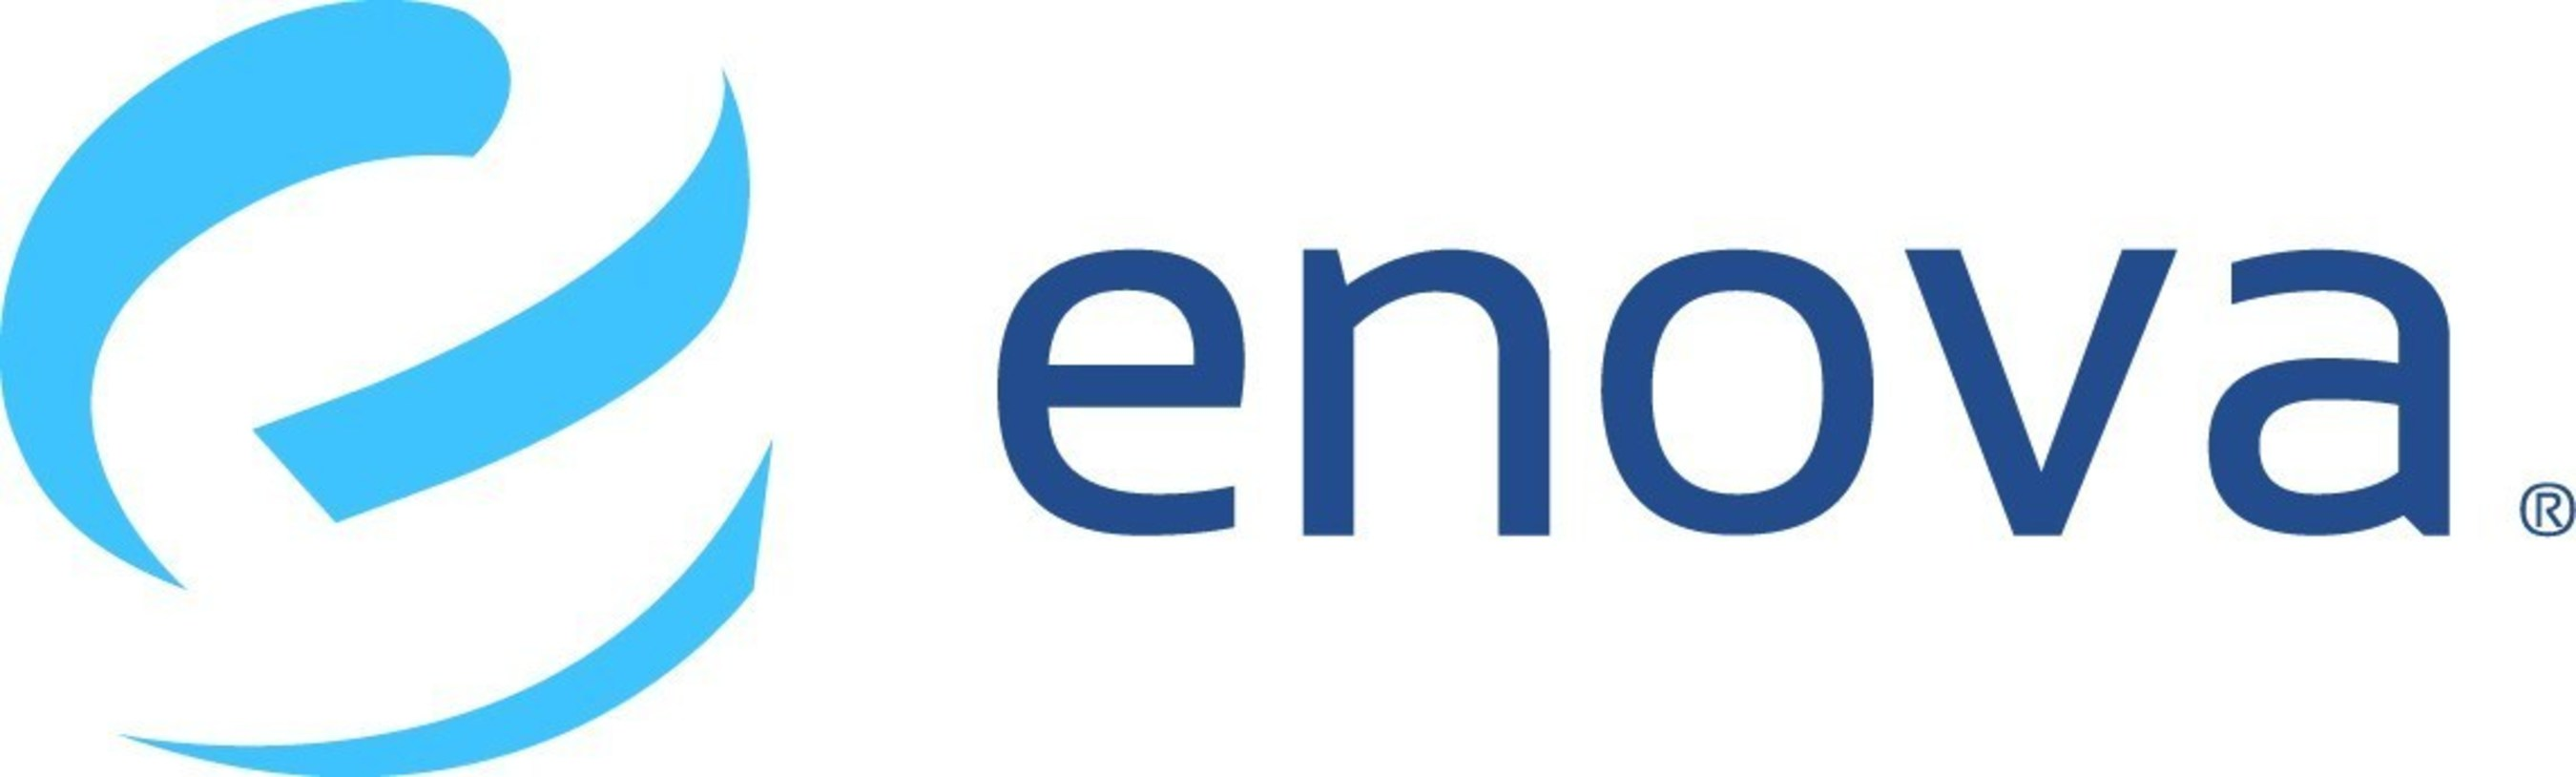 Enova International, Inc., a leading online lending company, today announced financial results for the quarter ...